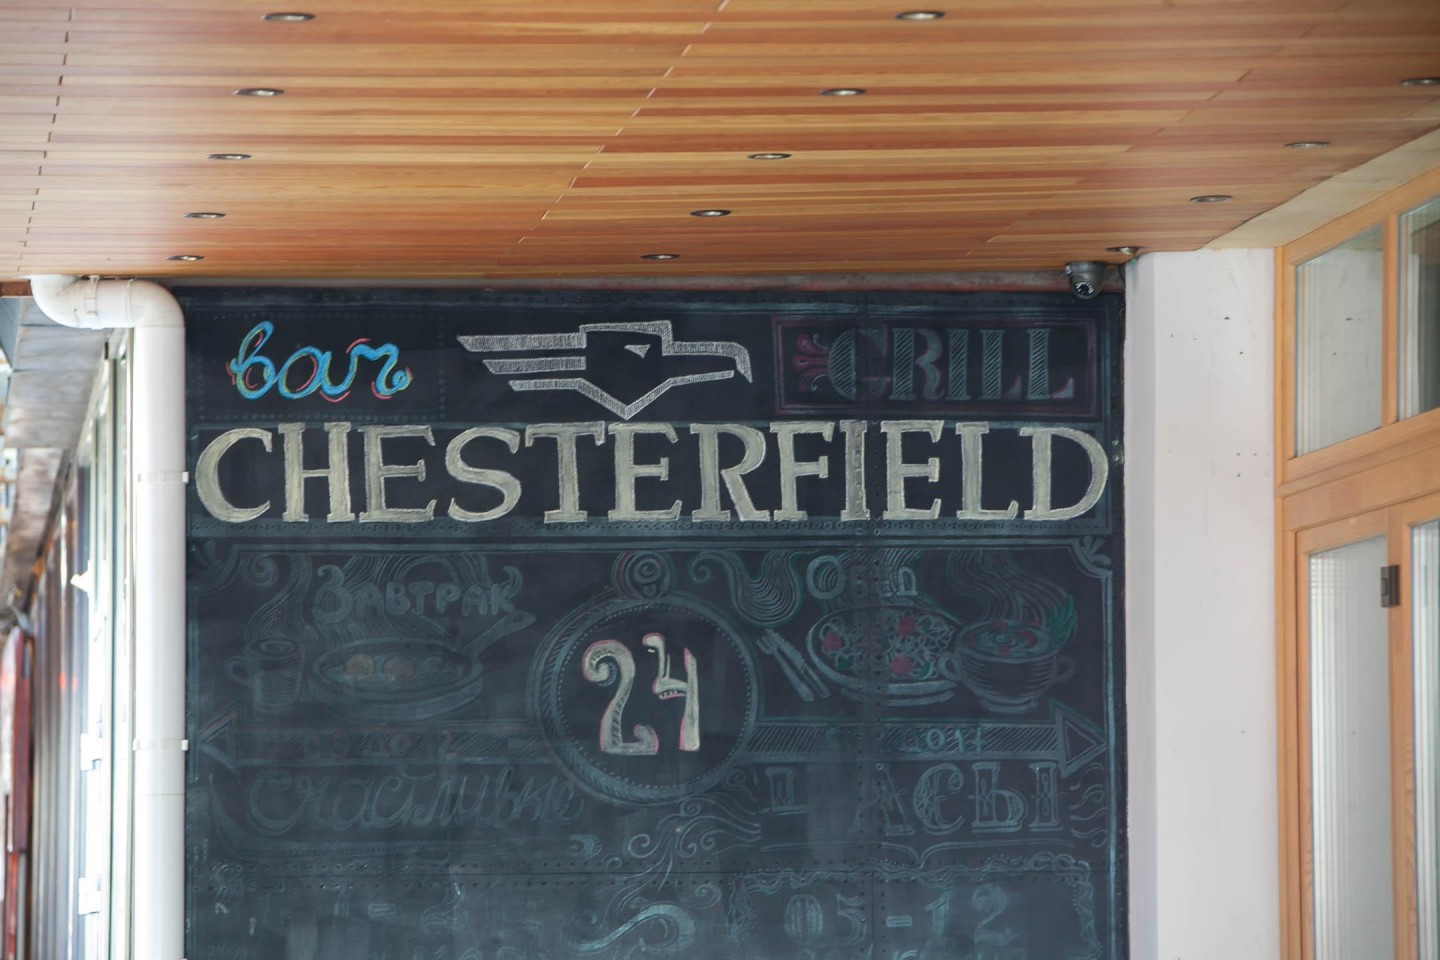 Chesterfield Bar — ParkSeason